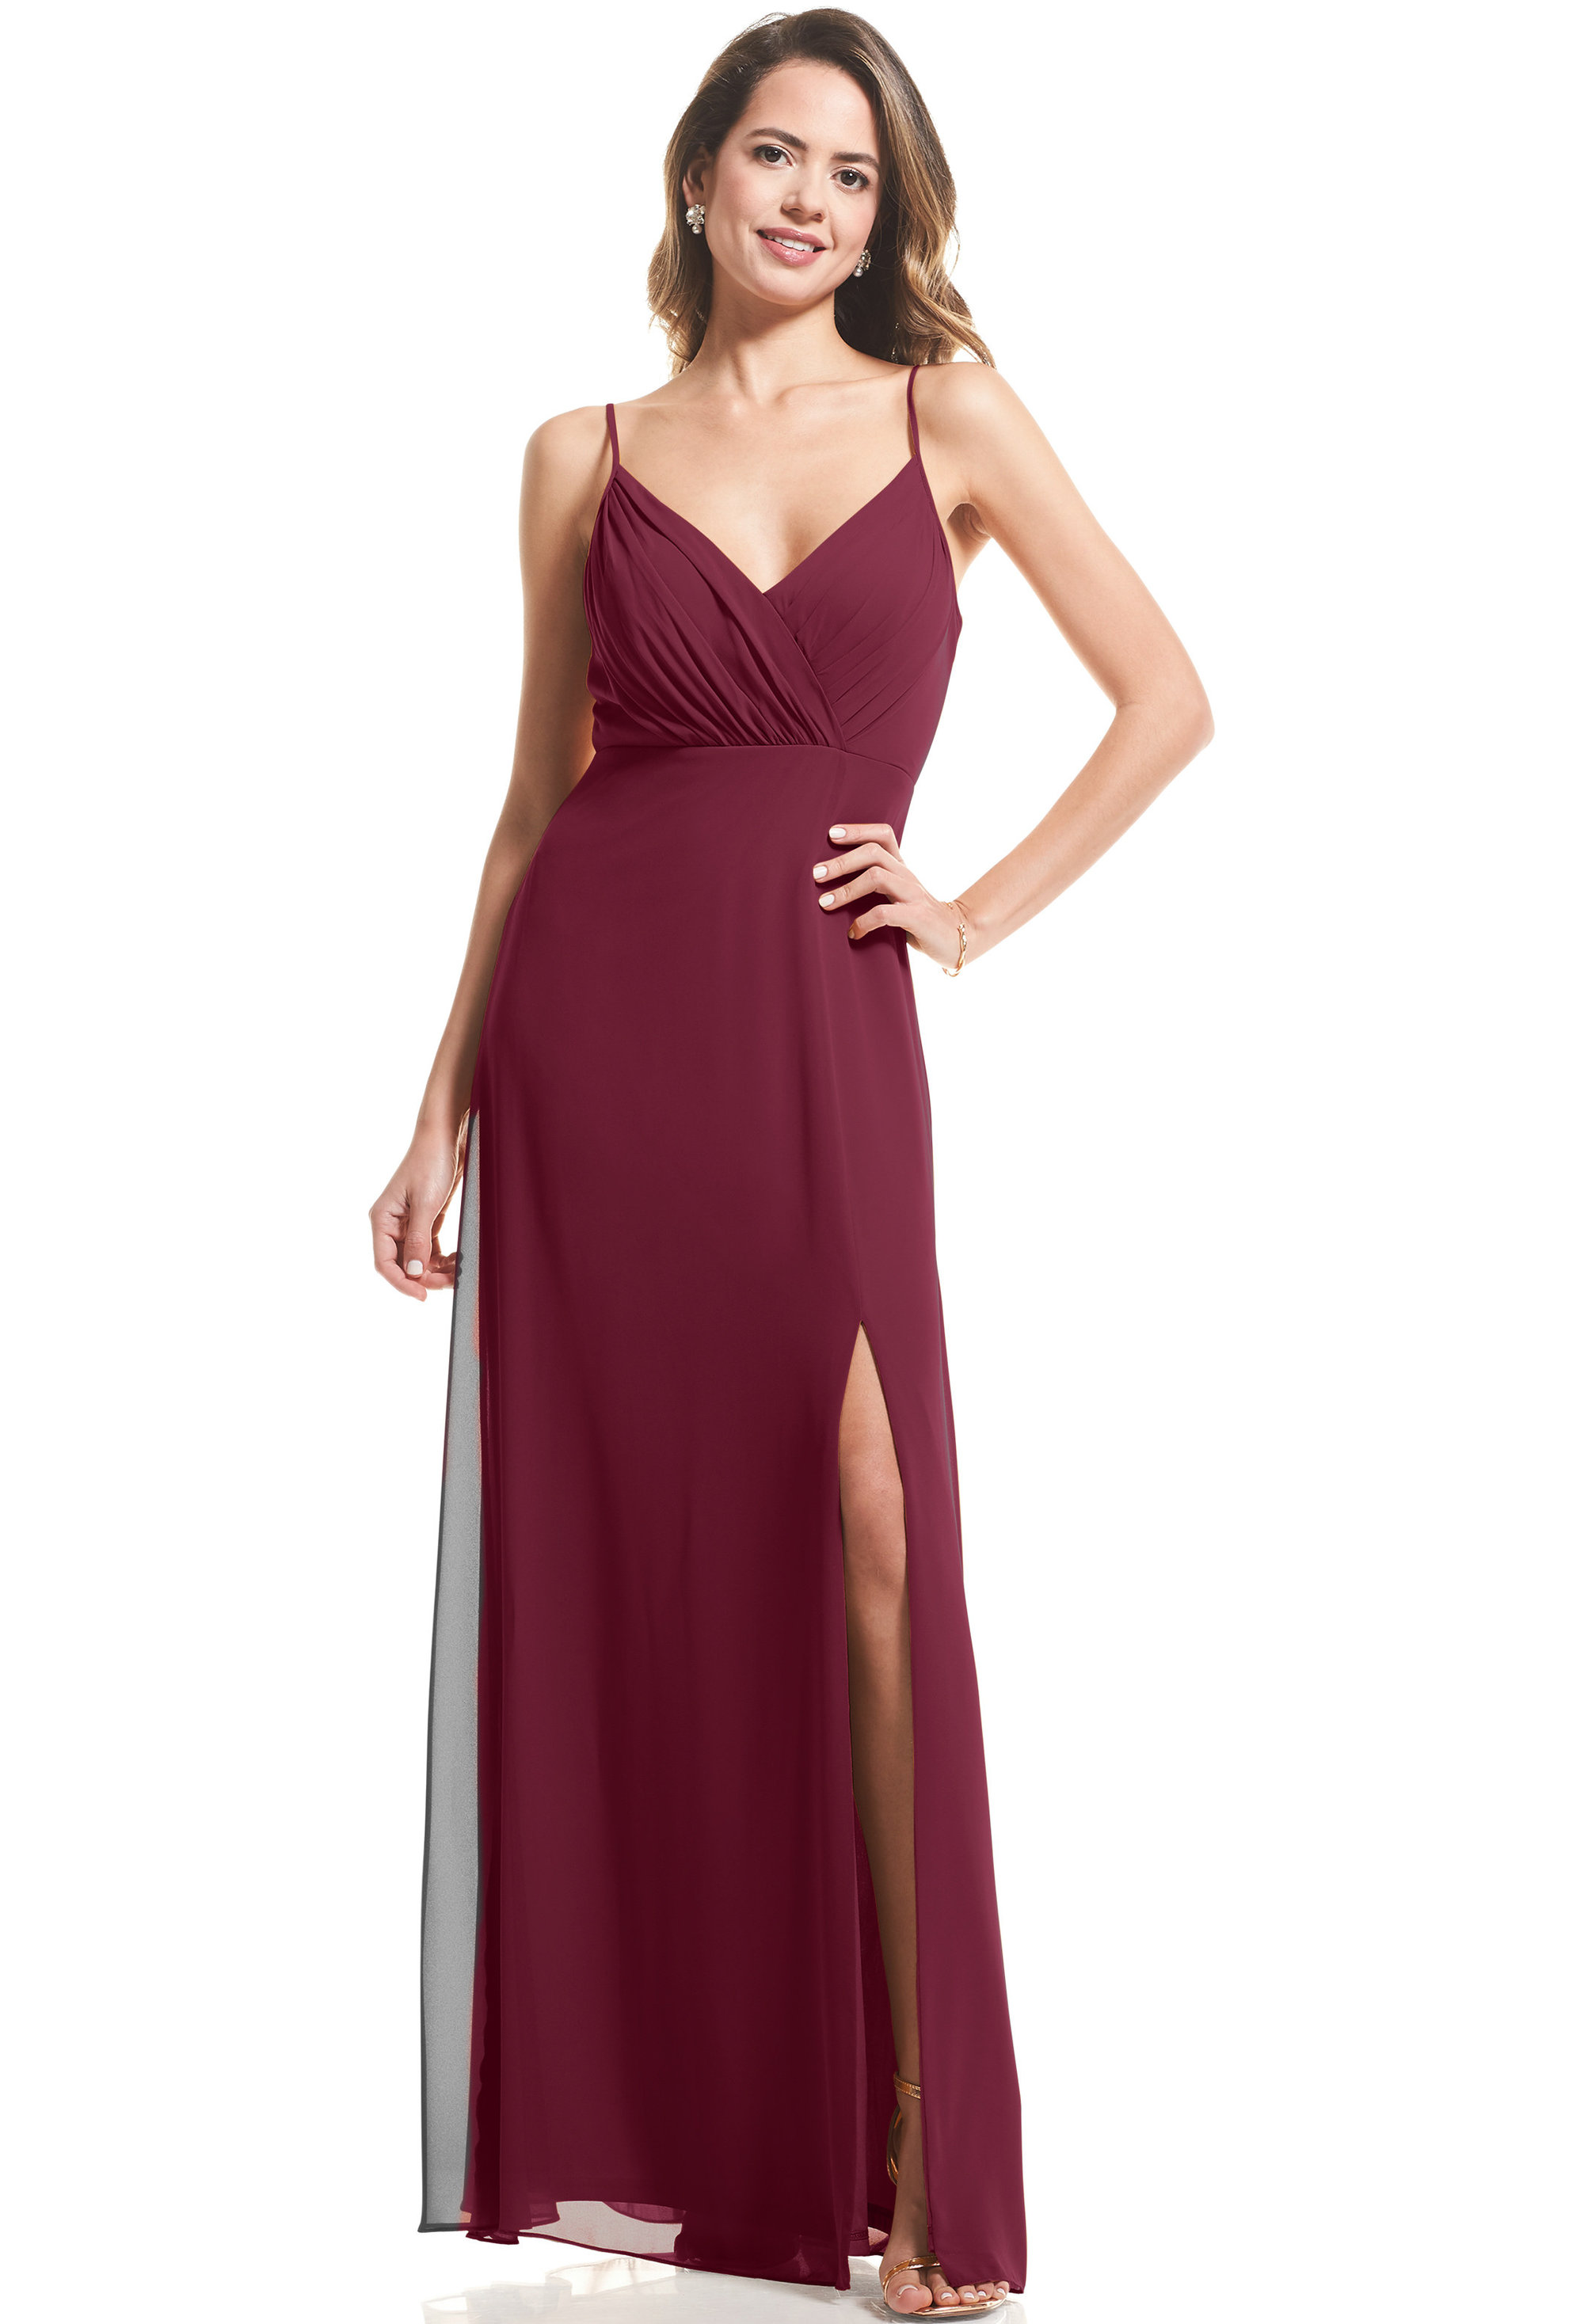 Bill Levkoff SANGRIA Chiffon Surplice A-Line gown, $89.00 Front